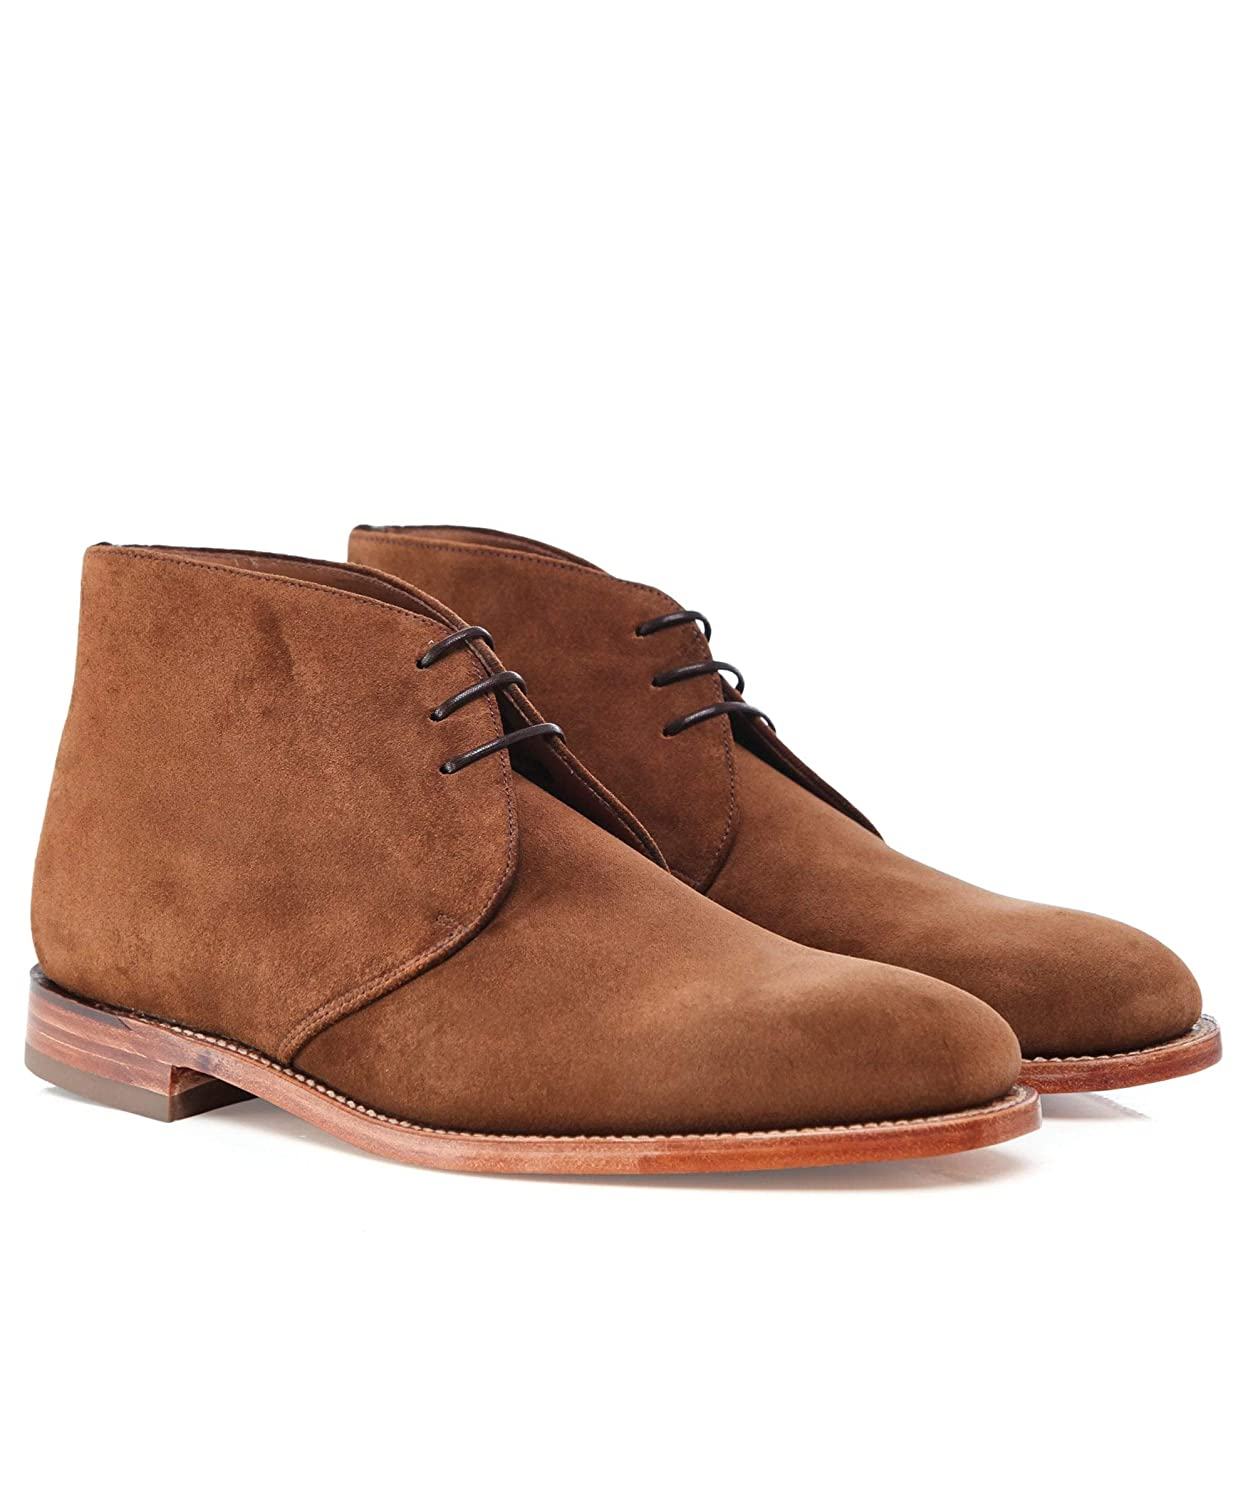 Loake Mens Suede Boughton Chukka Boots Brown